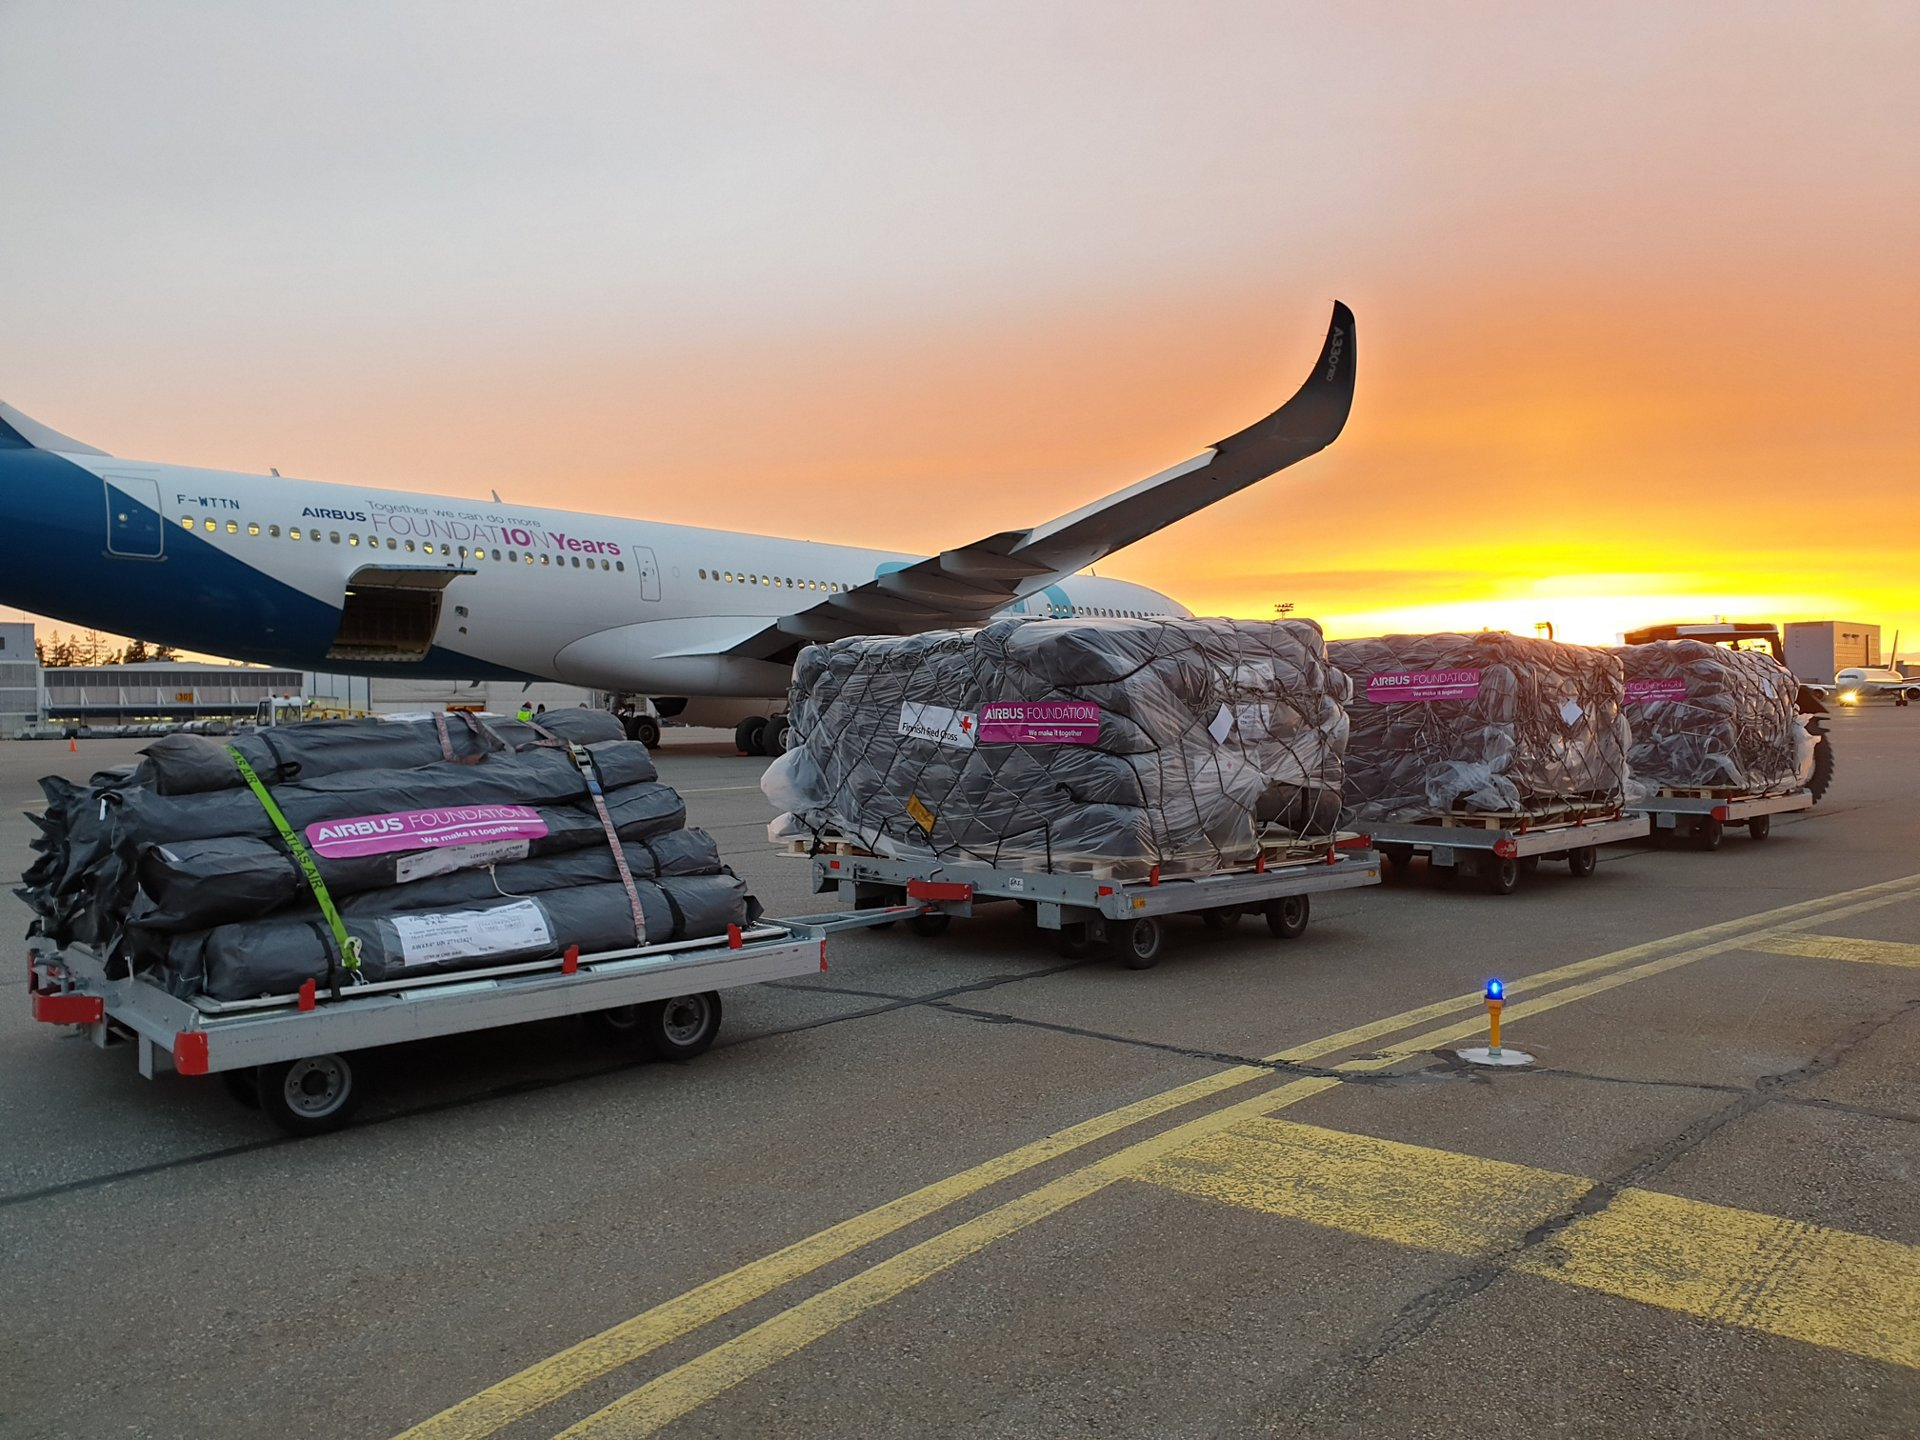 The Airbus Foundation has organized a relief flight, using an A330-900 test aircraft, to Kabul in partnership with the International Federation of the Red Cross and Red Crescent Societies and the Finnish Red Cross.